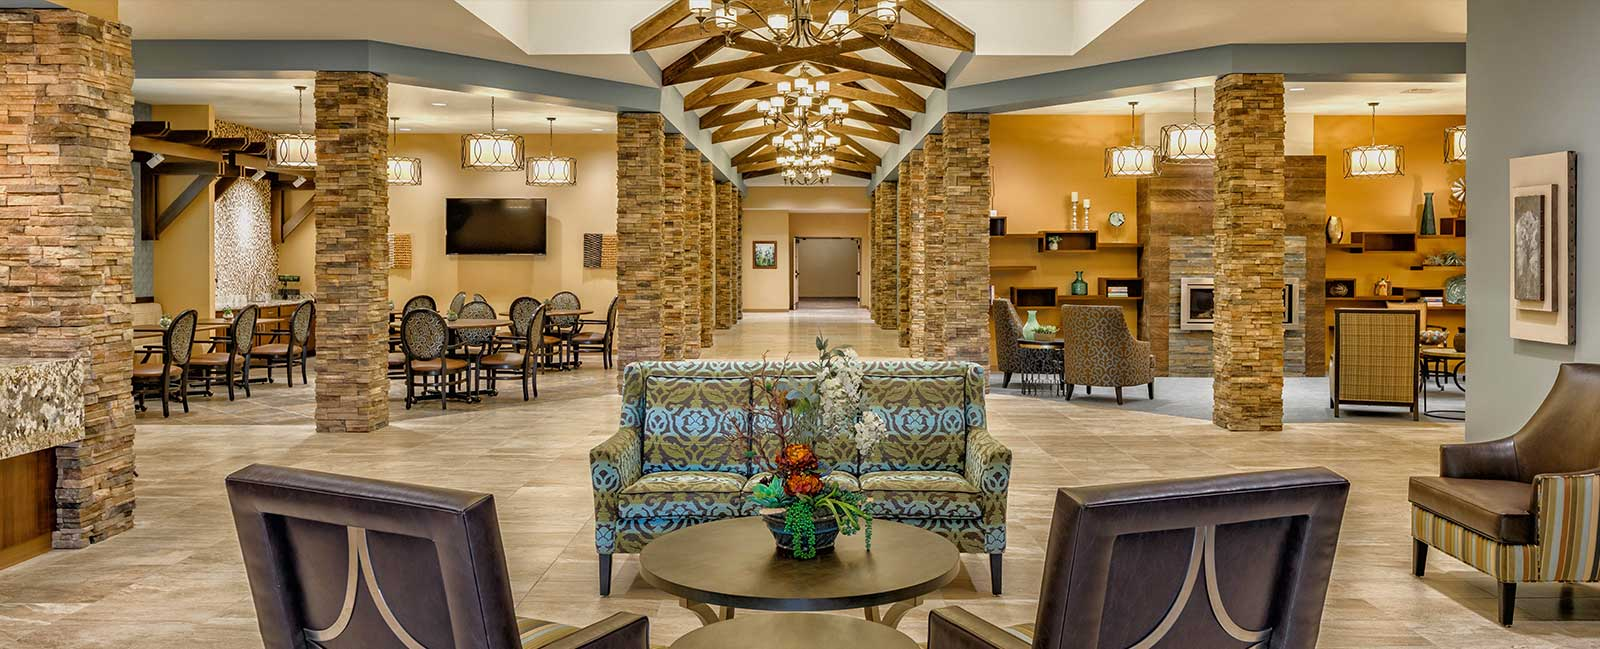 Assisted Living Center